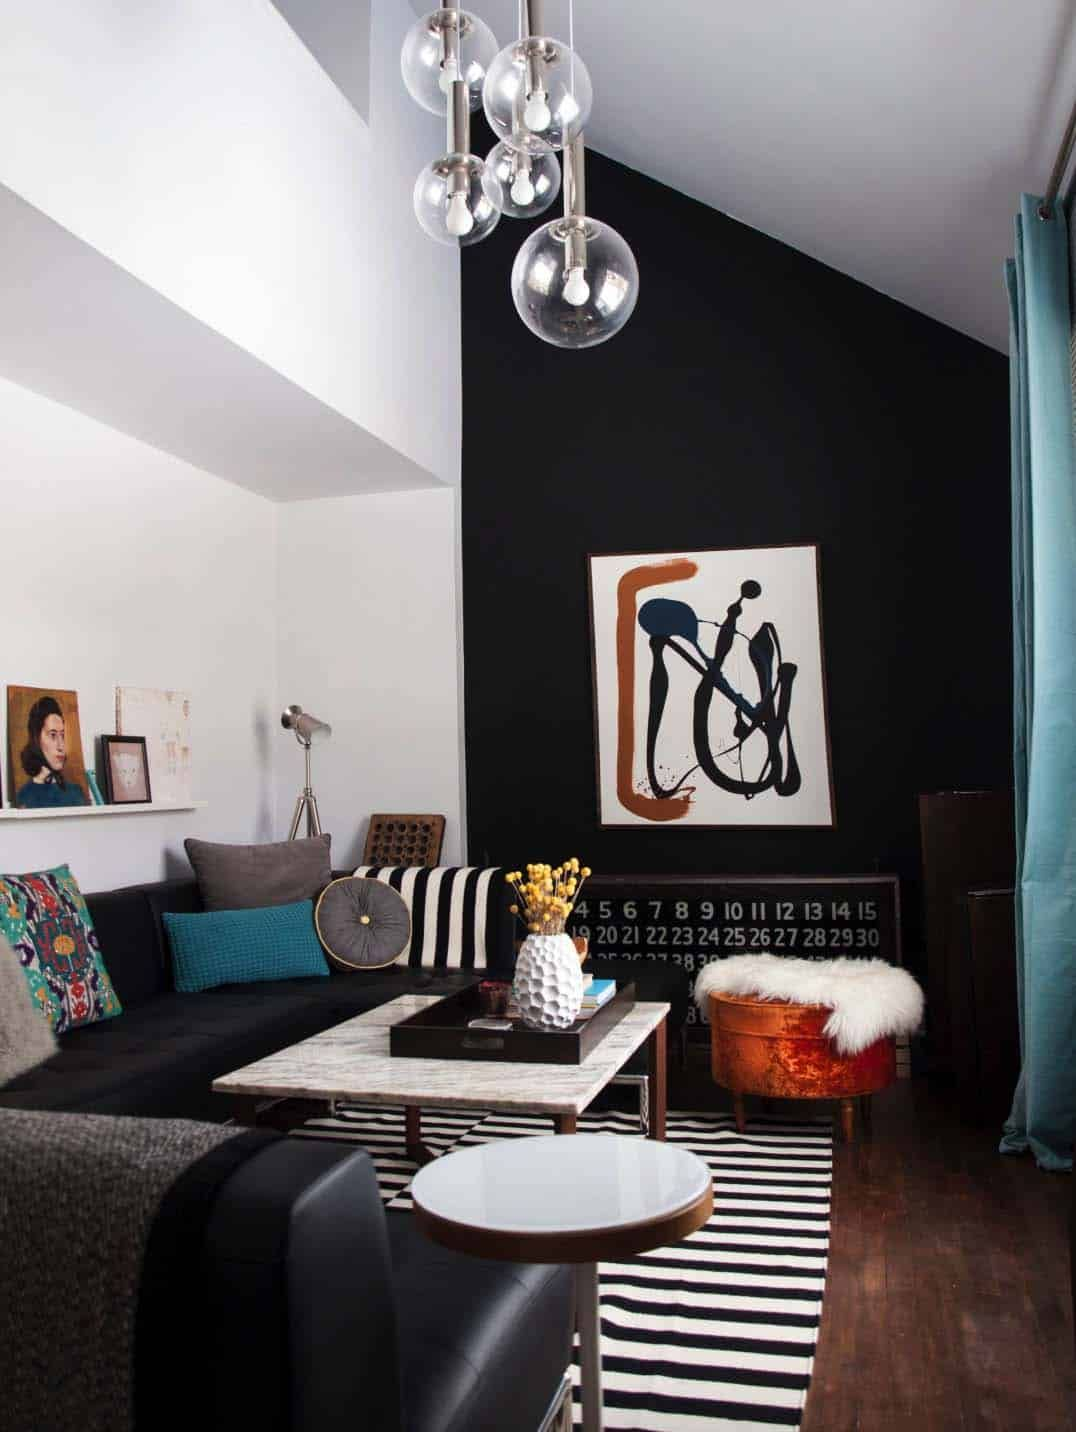 28 Wunderschöne Wohnzimmer Mit Schwarzen Wänden Die Ein Gemütliches Drama Schaffen Black Accent Wall Living Room Accent Walls In Living Room Black Dining Room